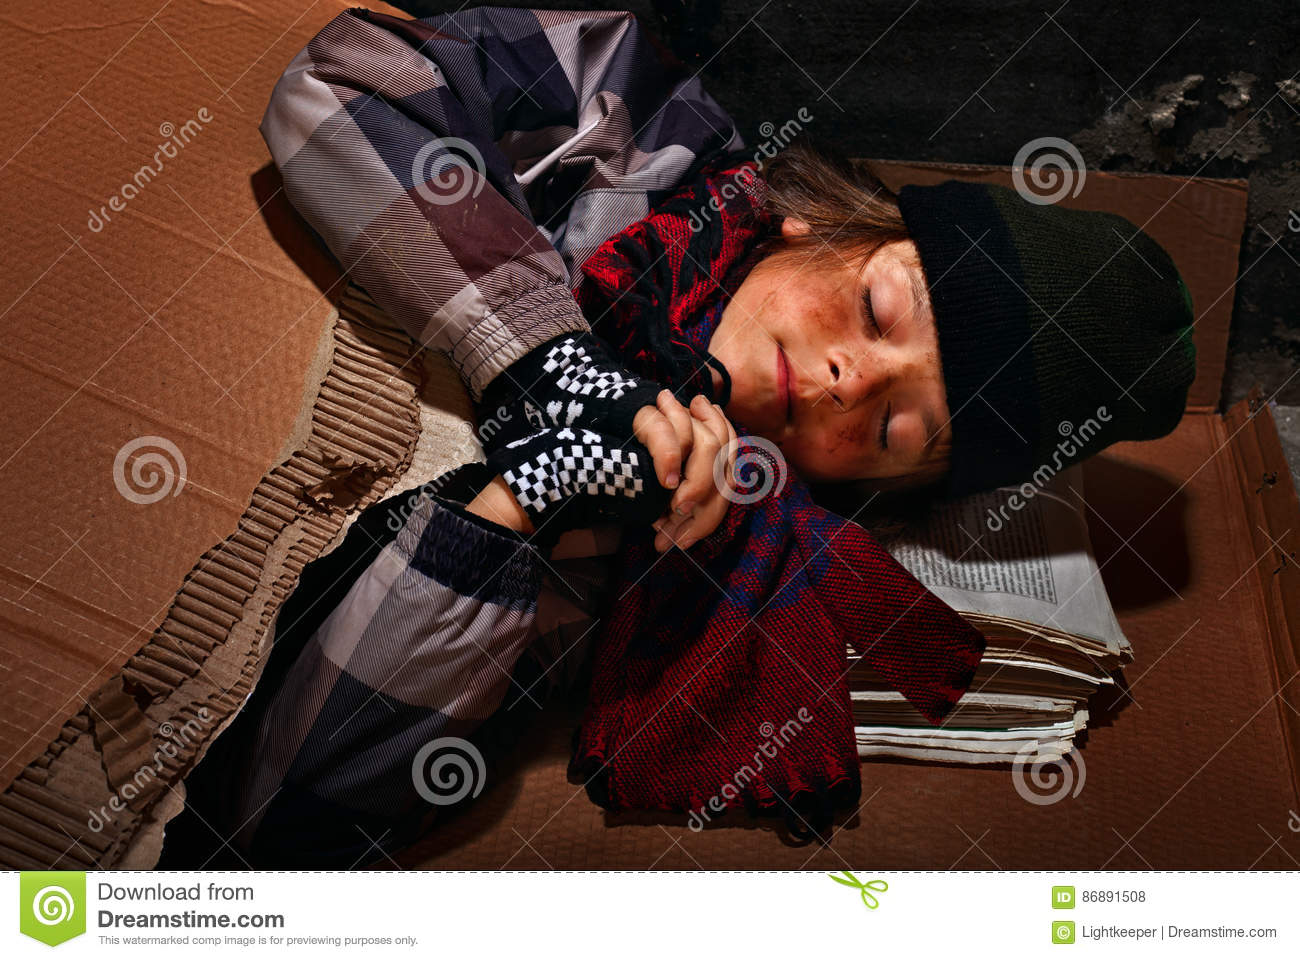 Poor beggar boy preparing to sleep on the street - covered with